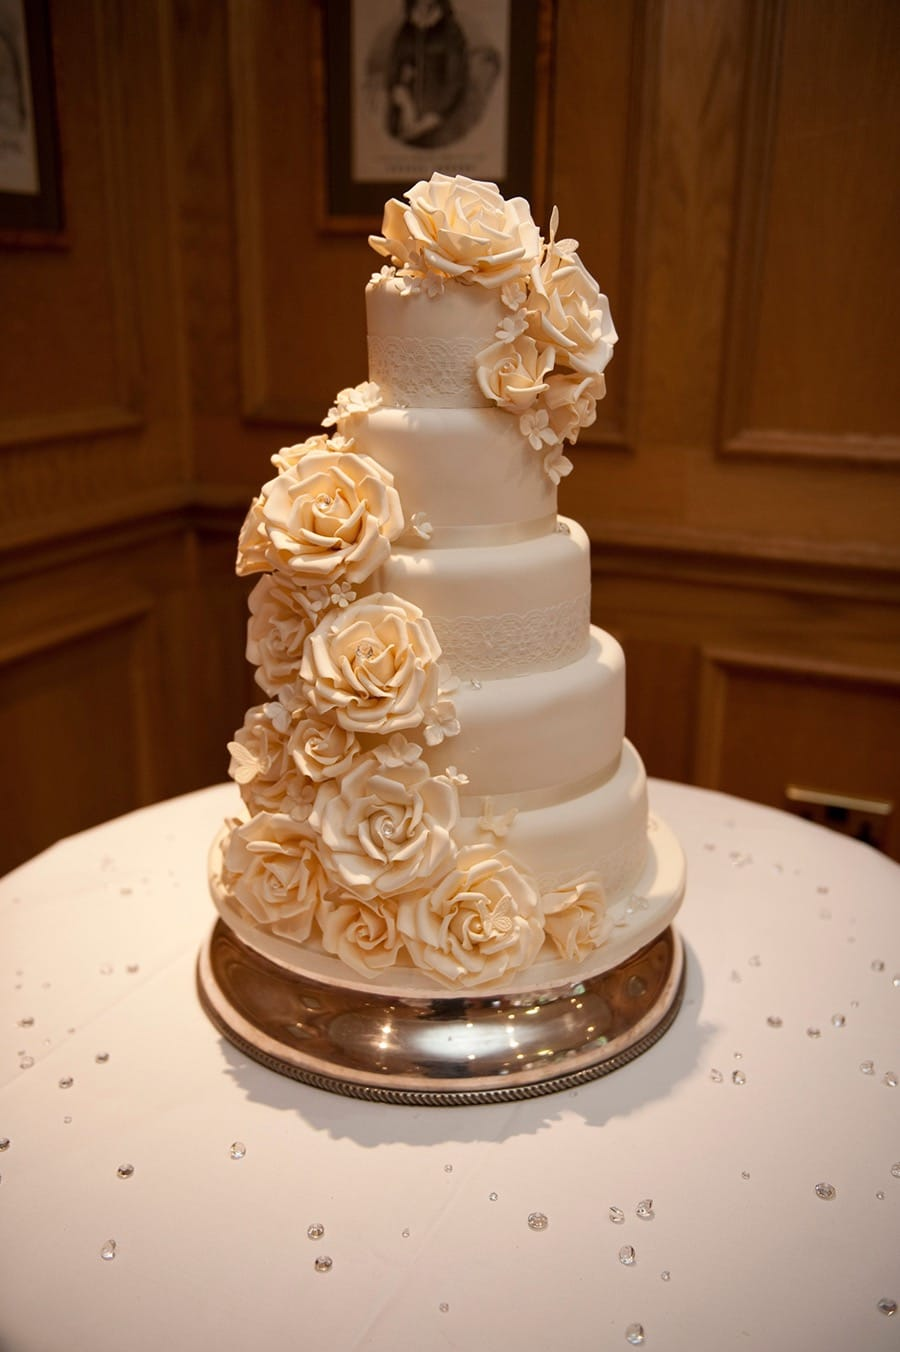 Gorgeous Golden Flower Couture Wedding Cakes (Image 11 of 20)